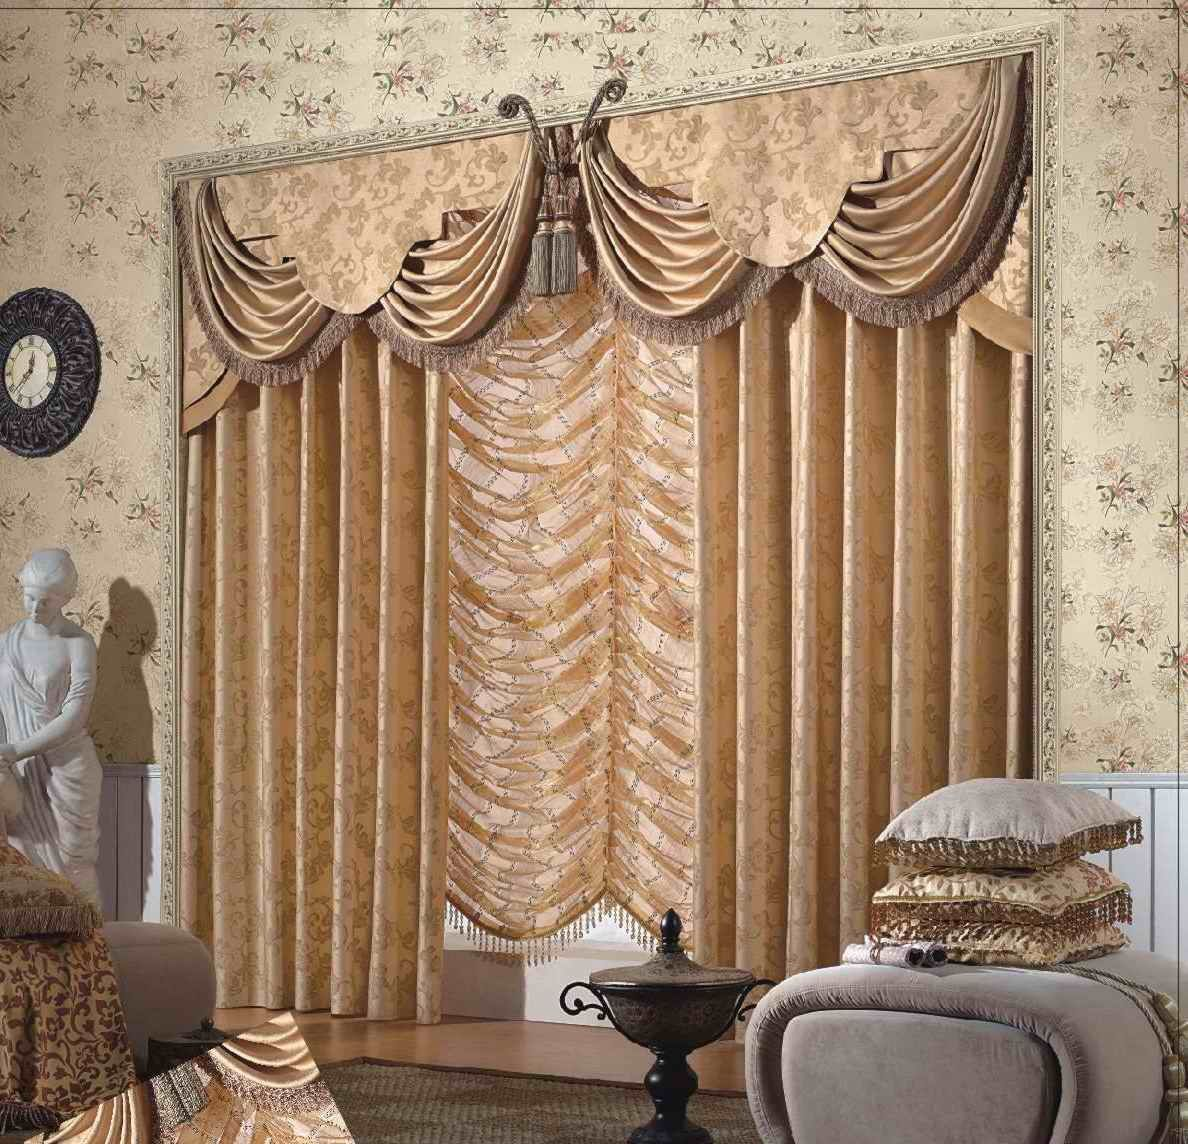 Arab Style Curtains European American Curtain Product On Alibaba